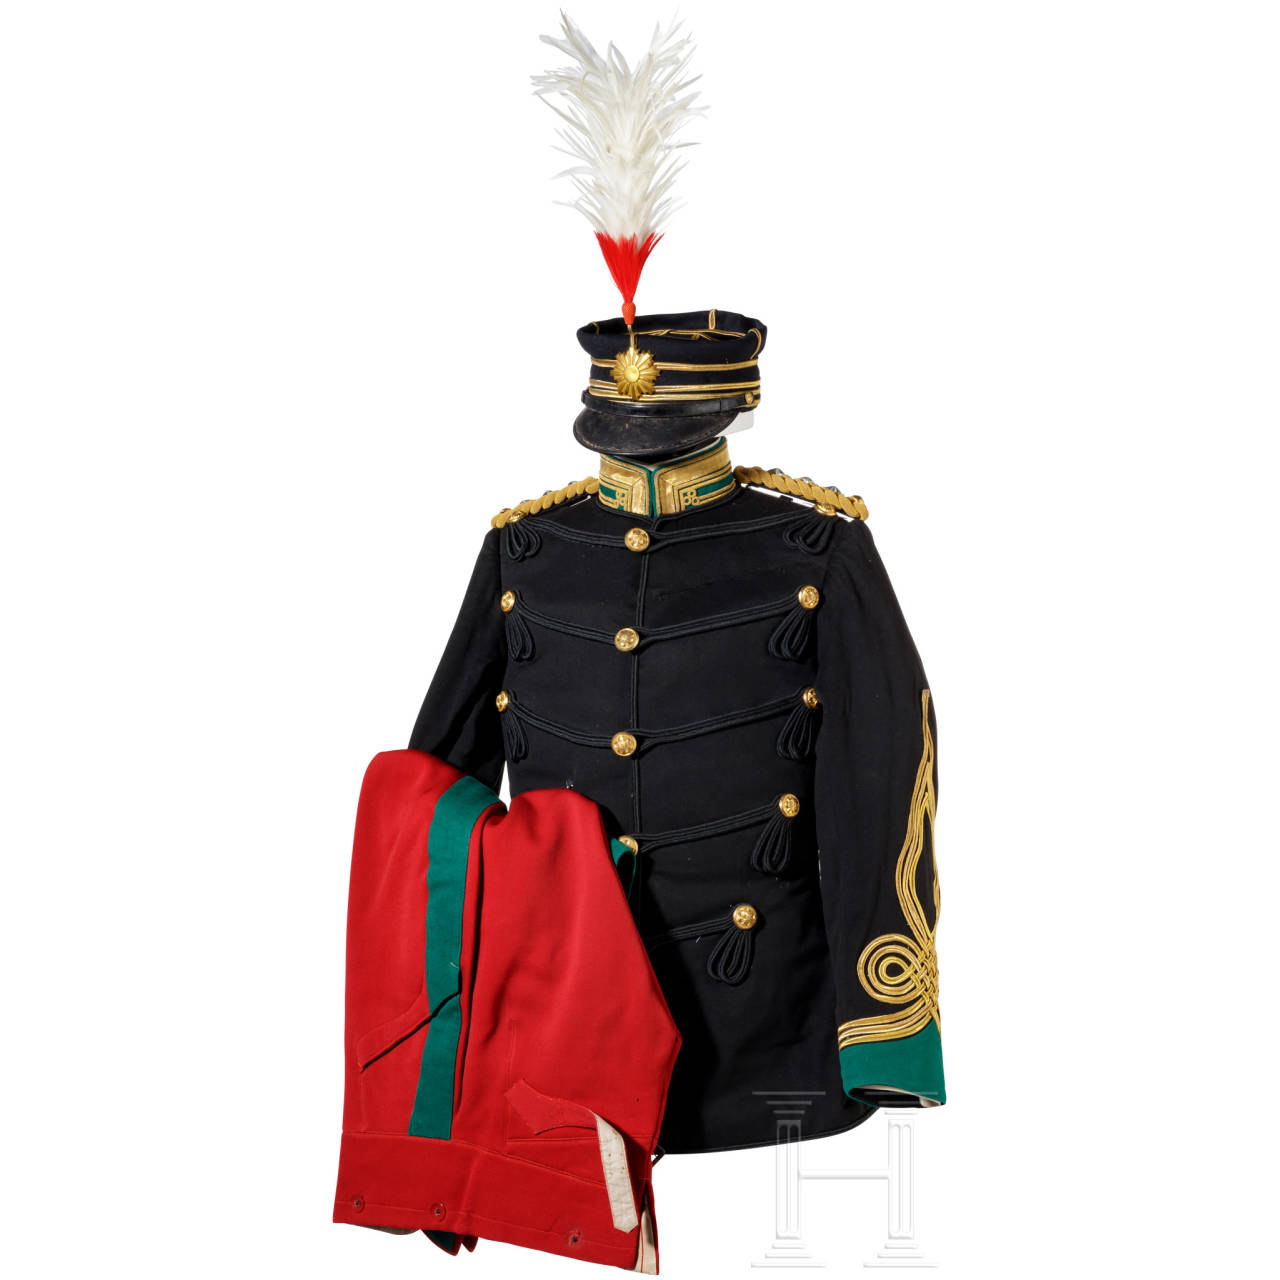 Uniform ensemble for a cavalry colonel, Meiji period